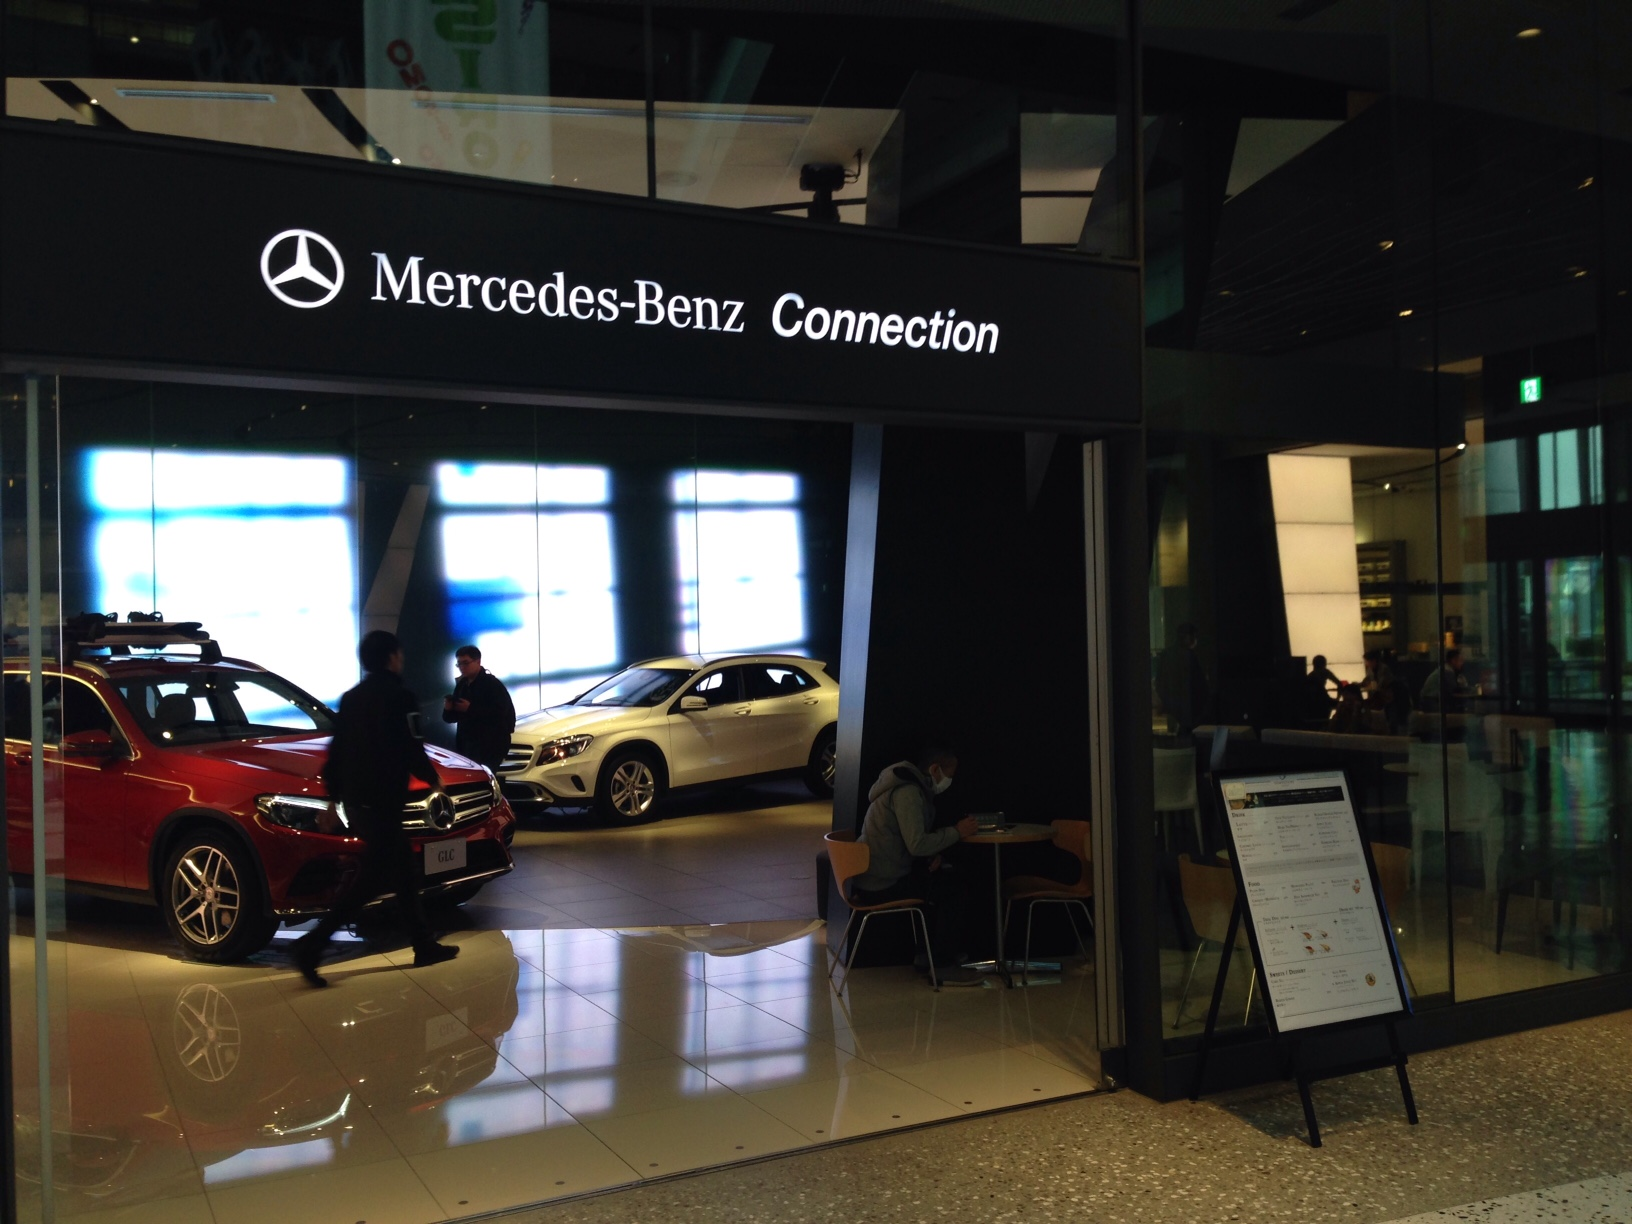 Mercedes-Benz Connection(梅田/カフェ)